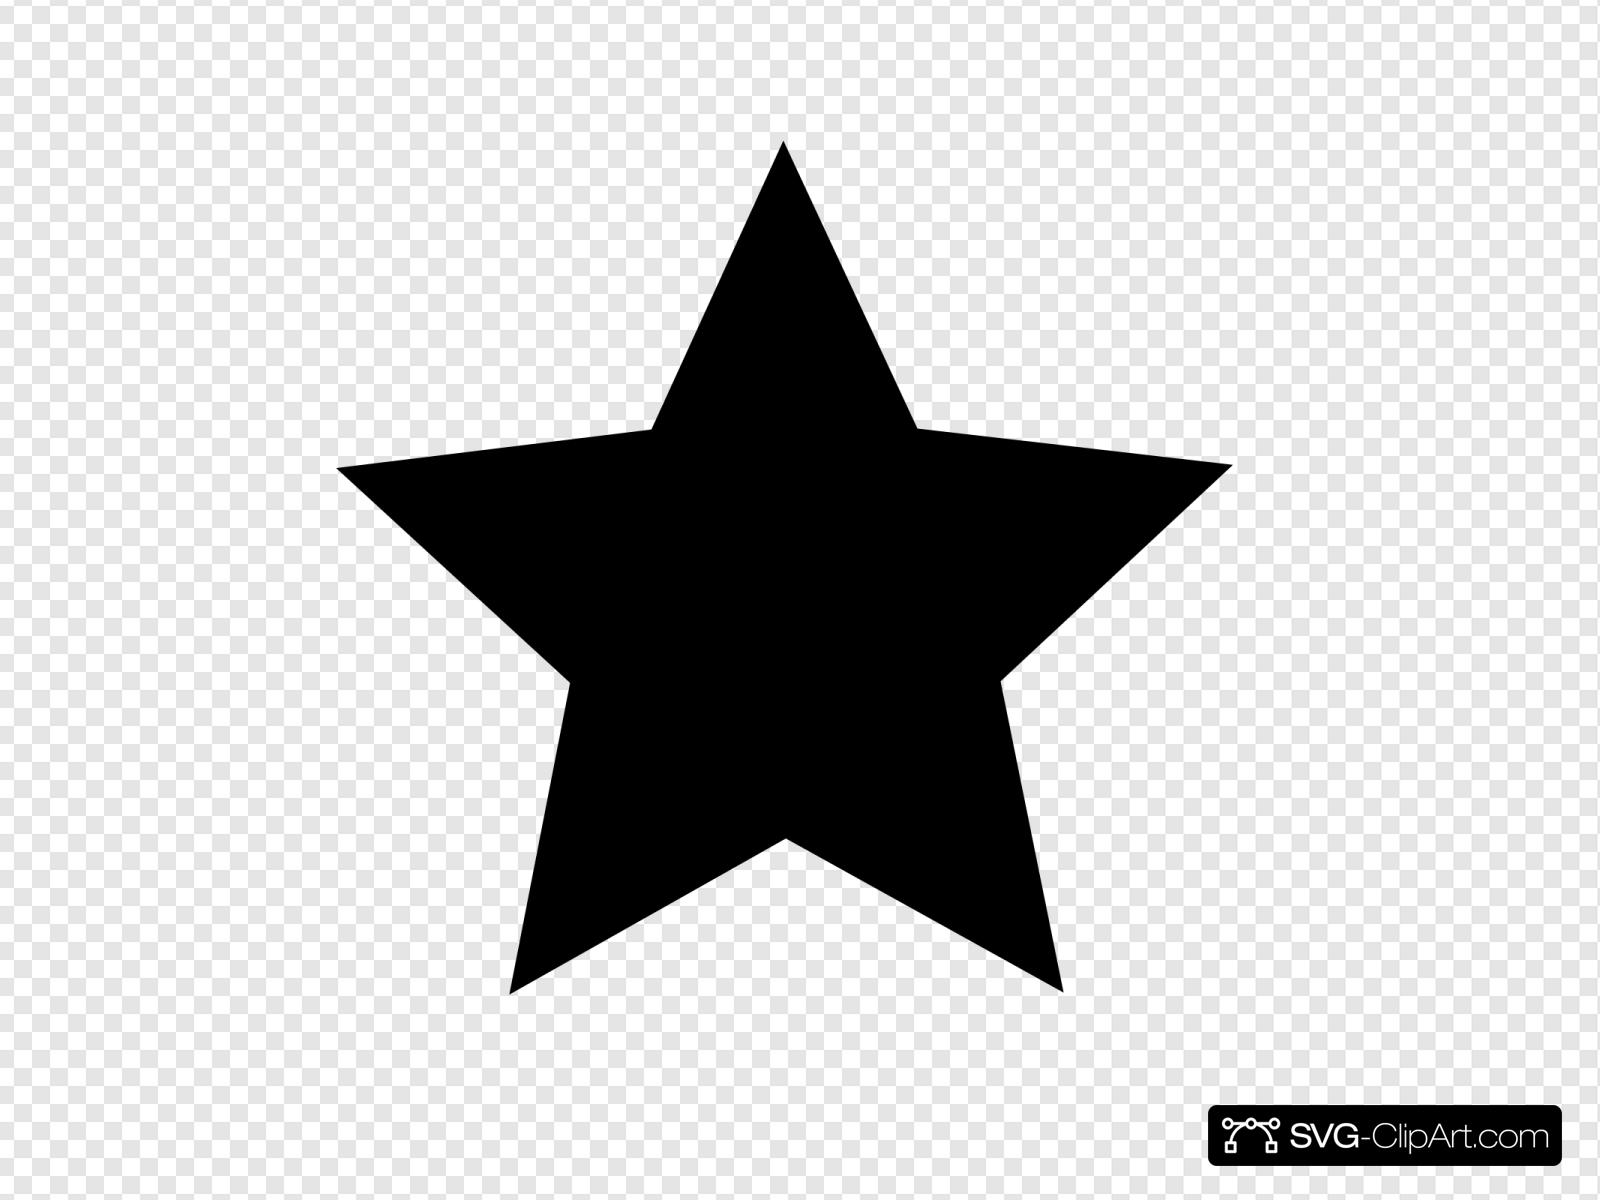 Black Star Clip art, Icon and SVG.